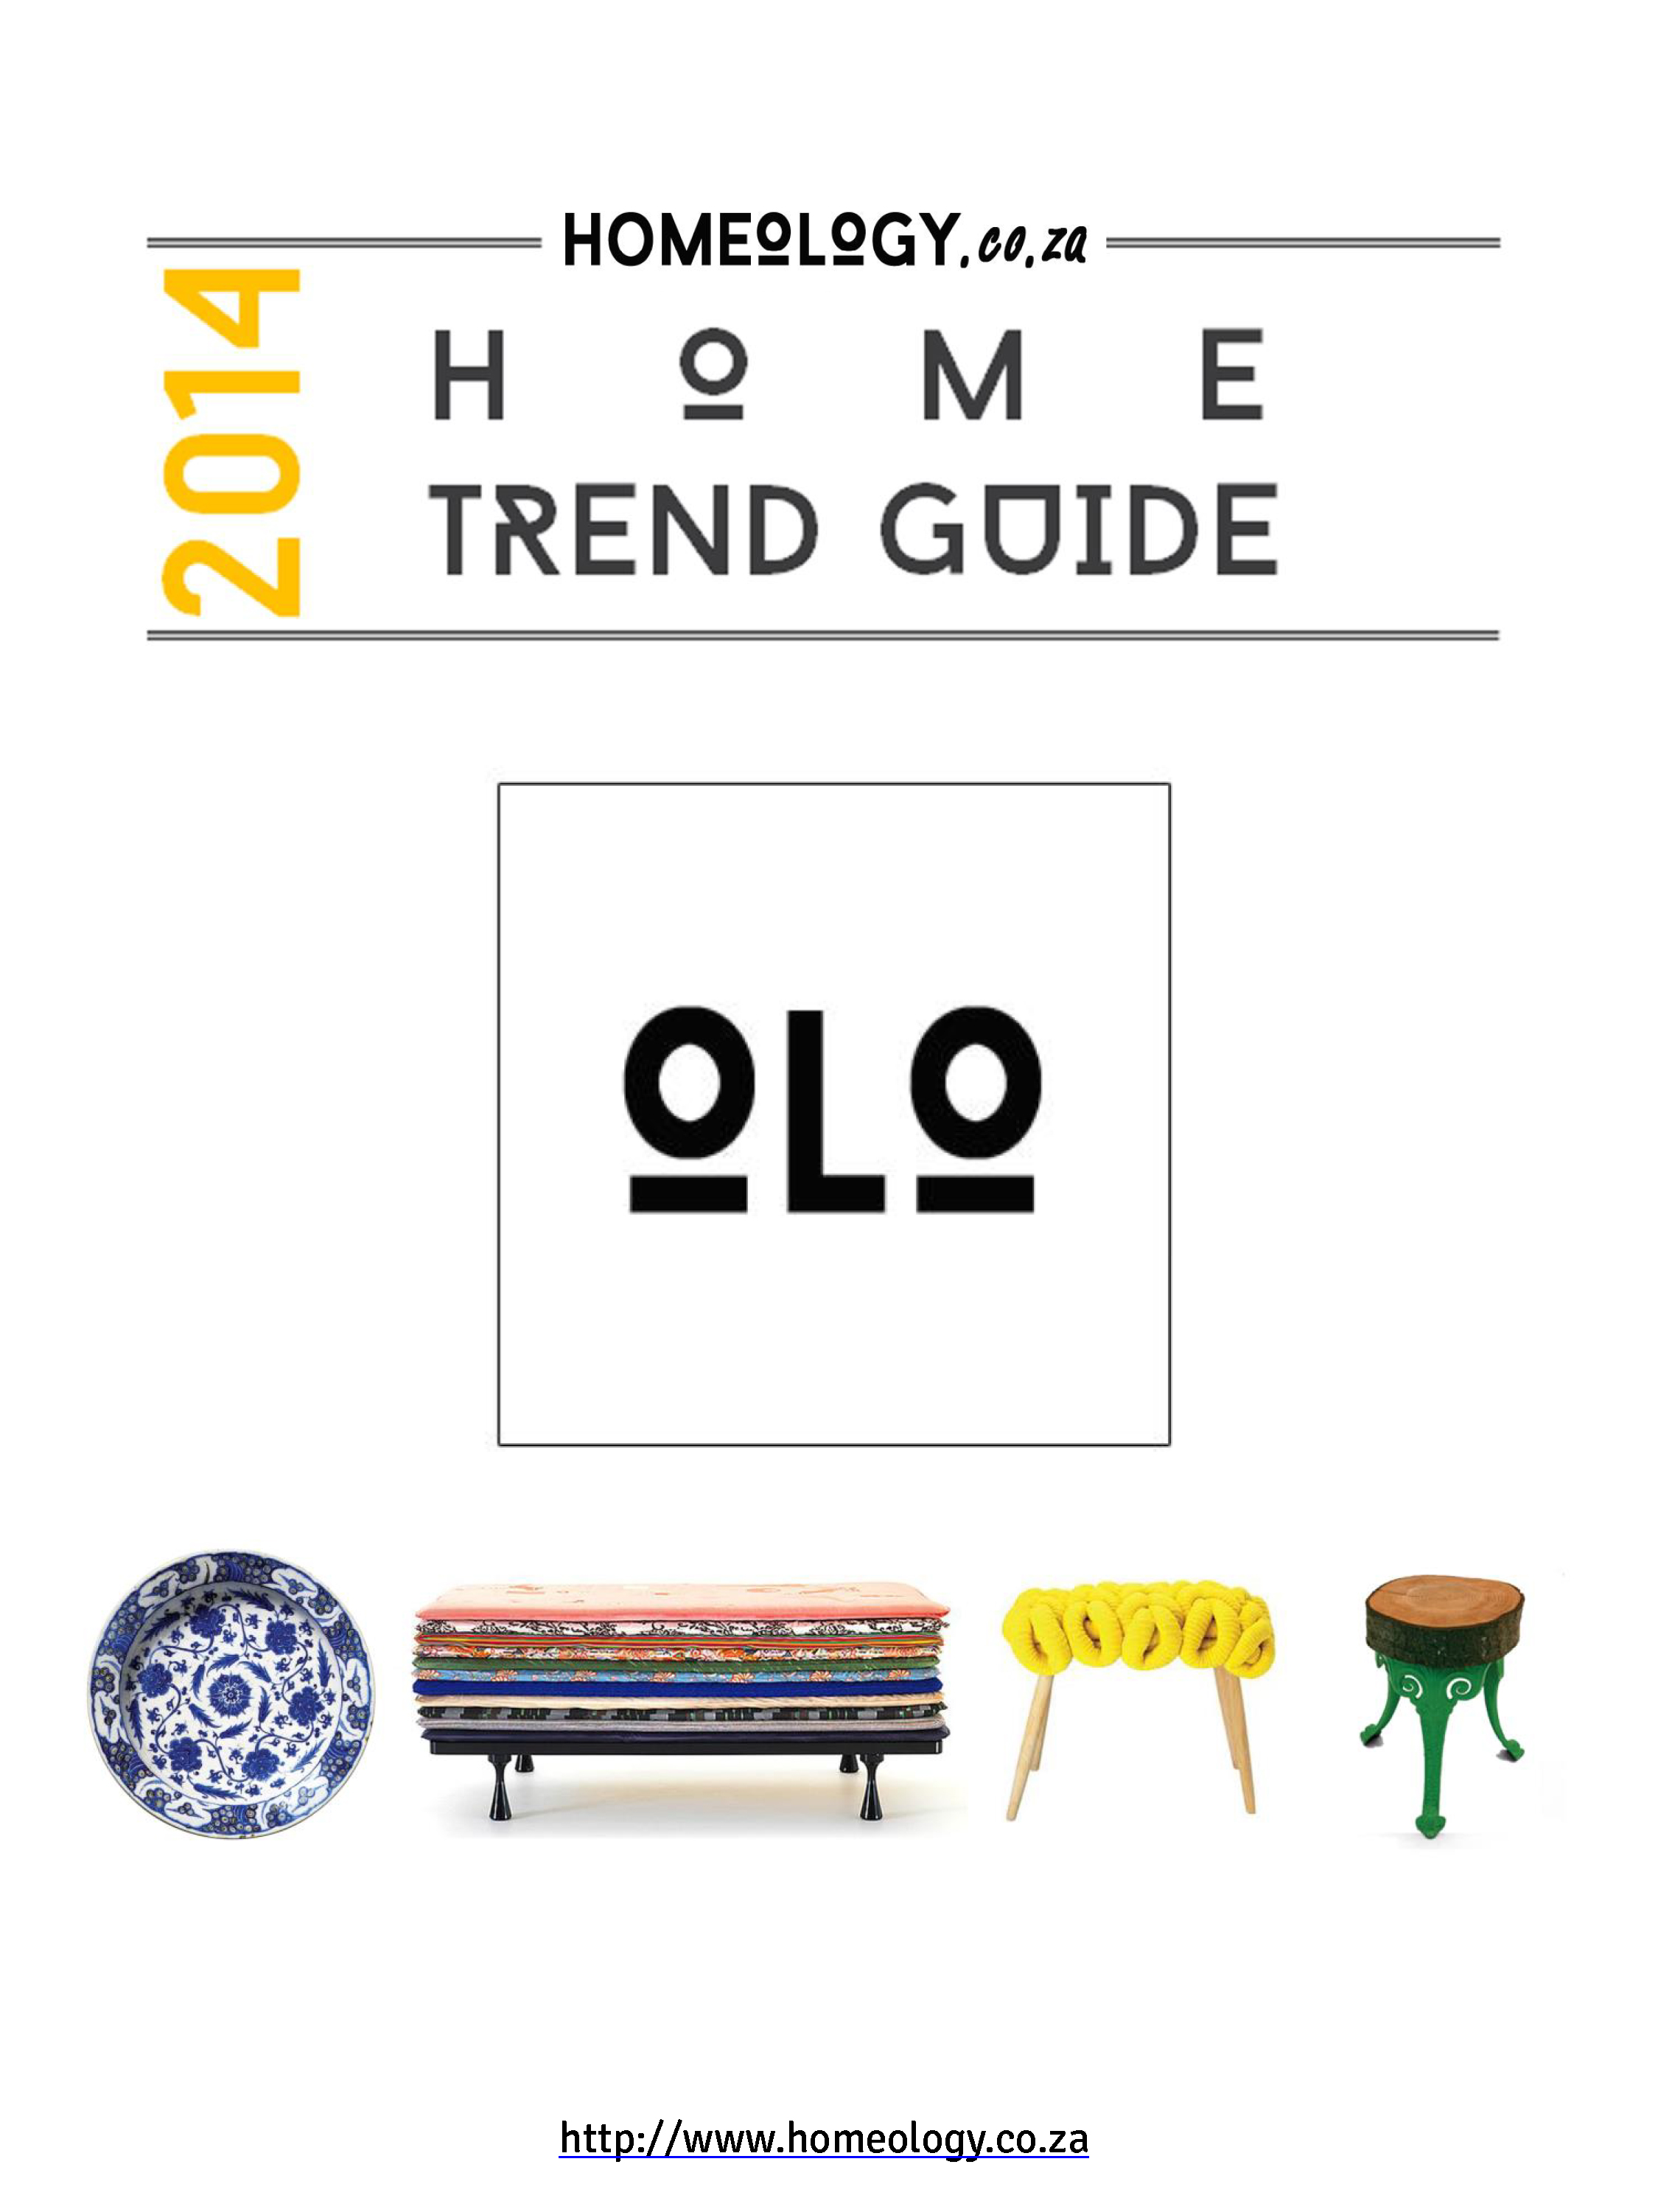 The Home Trend Guide 2014